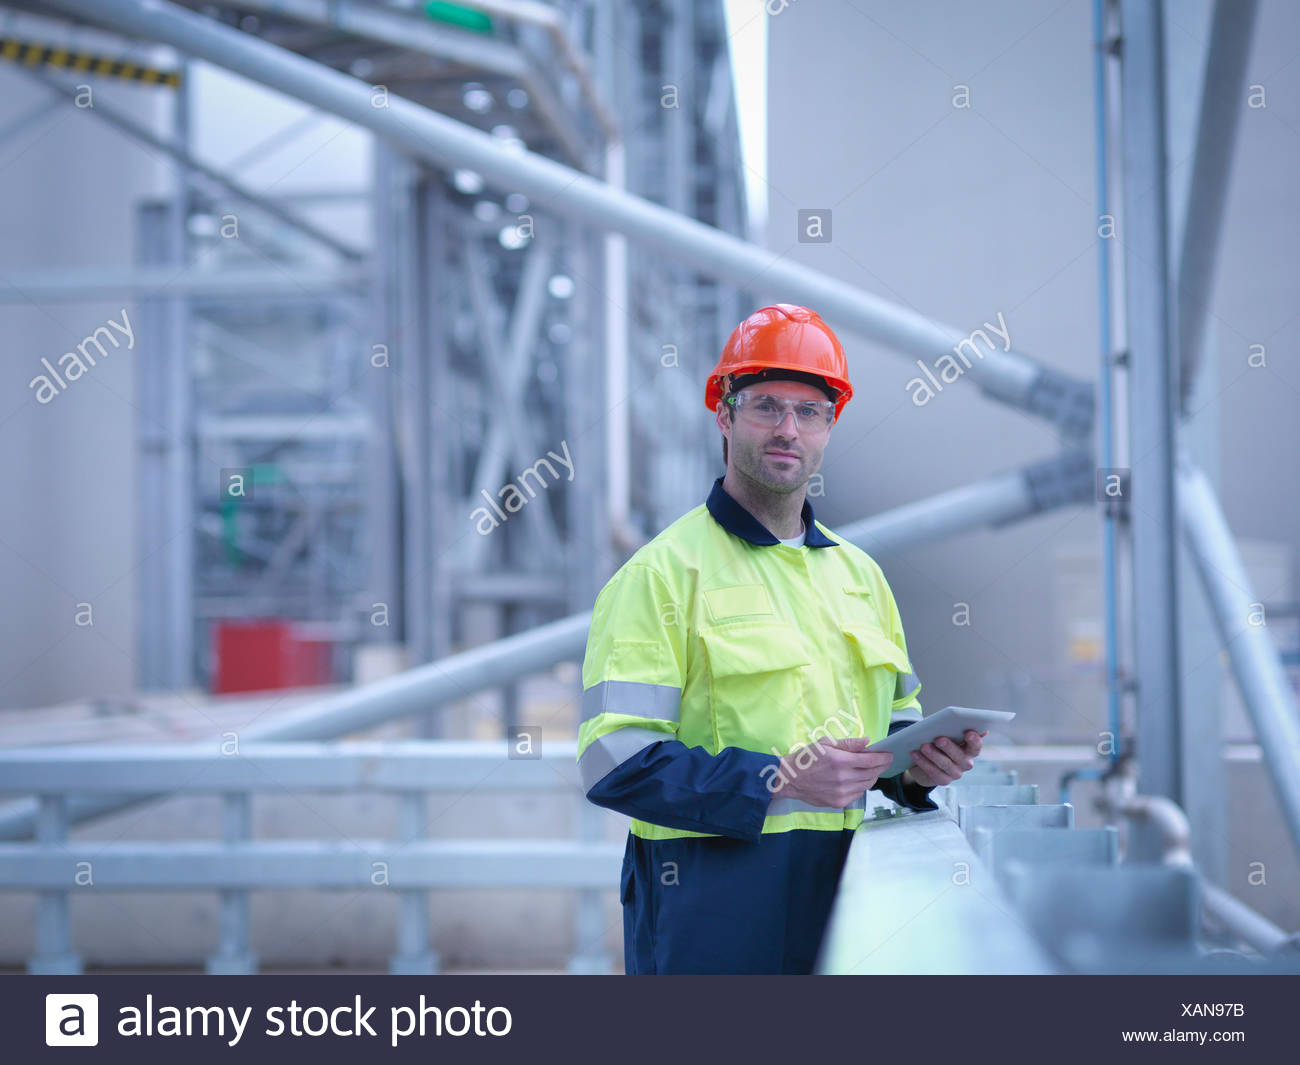 Portrait of worker holding digital tablet at biomass facility - Stock Image